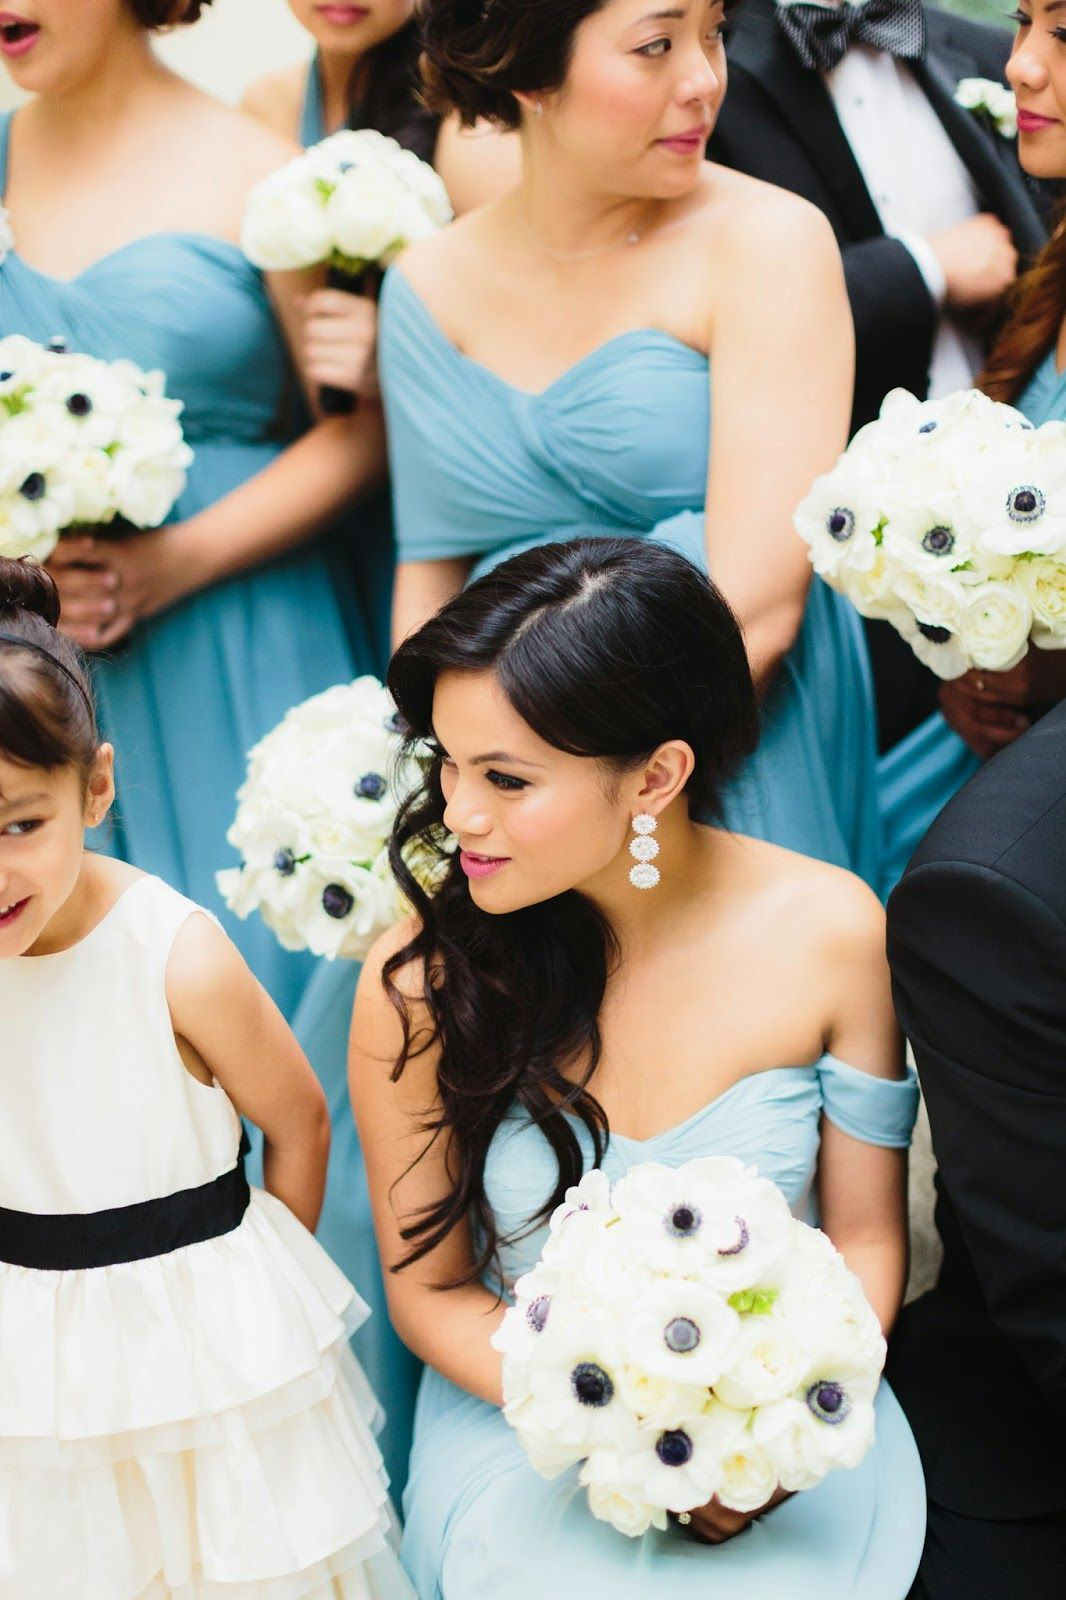 Black and white anemones bouquet with blue bridesmaid dress